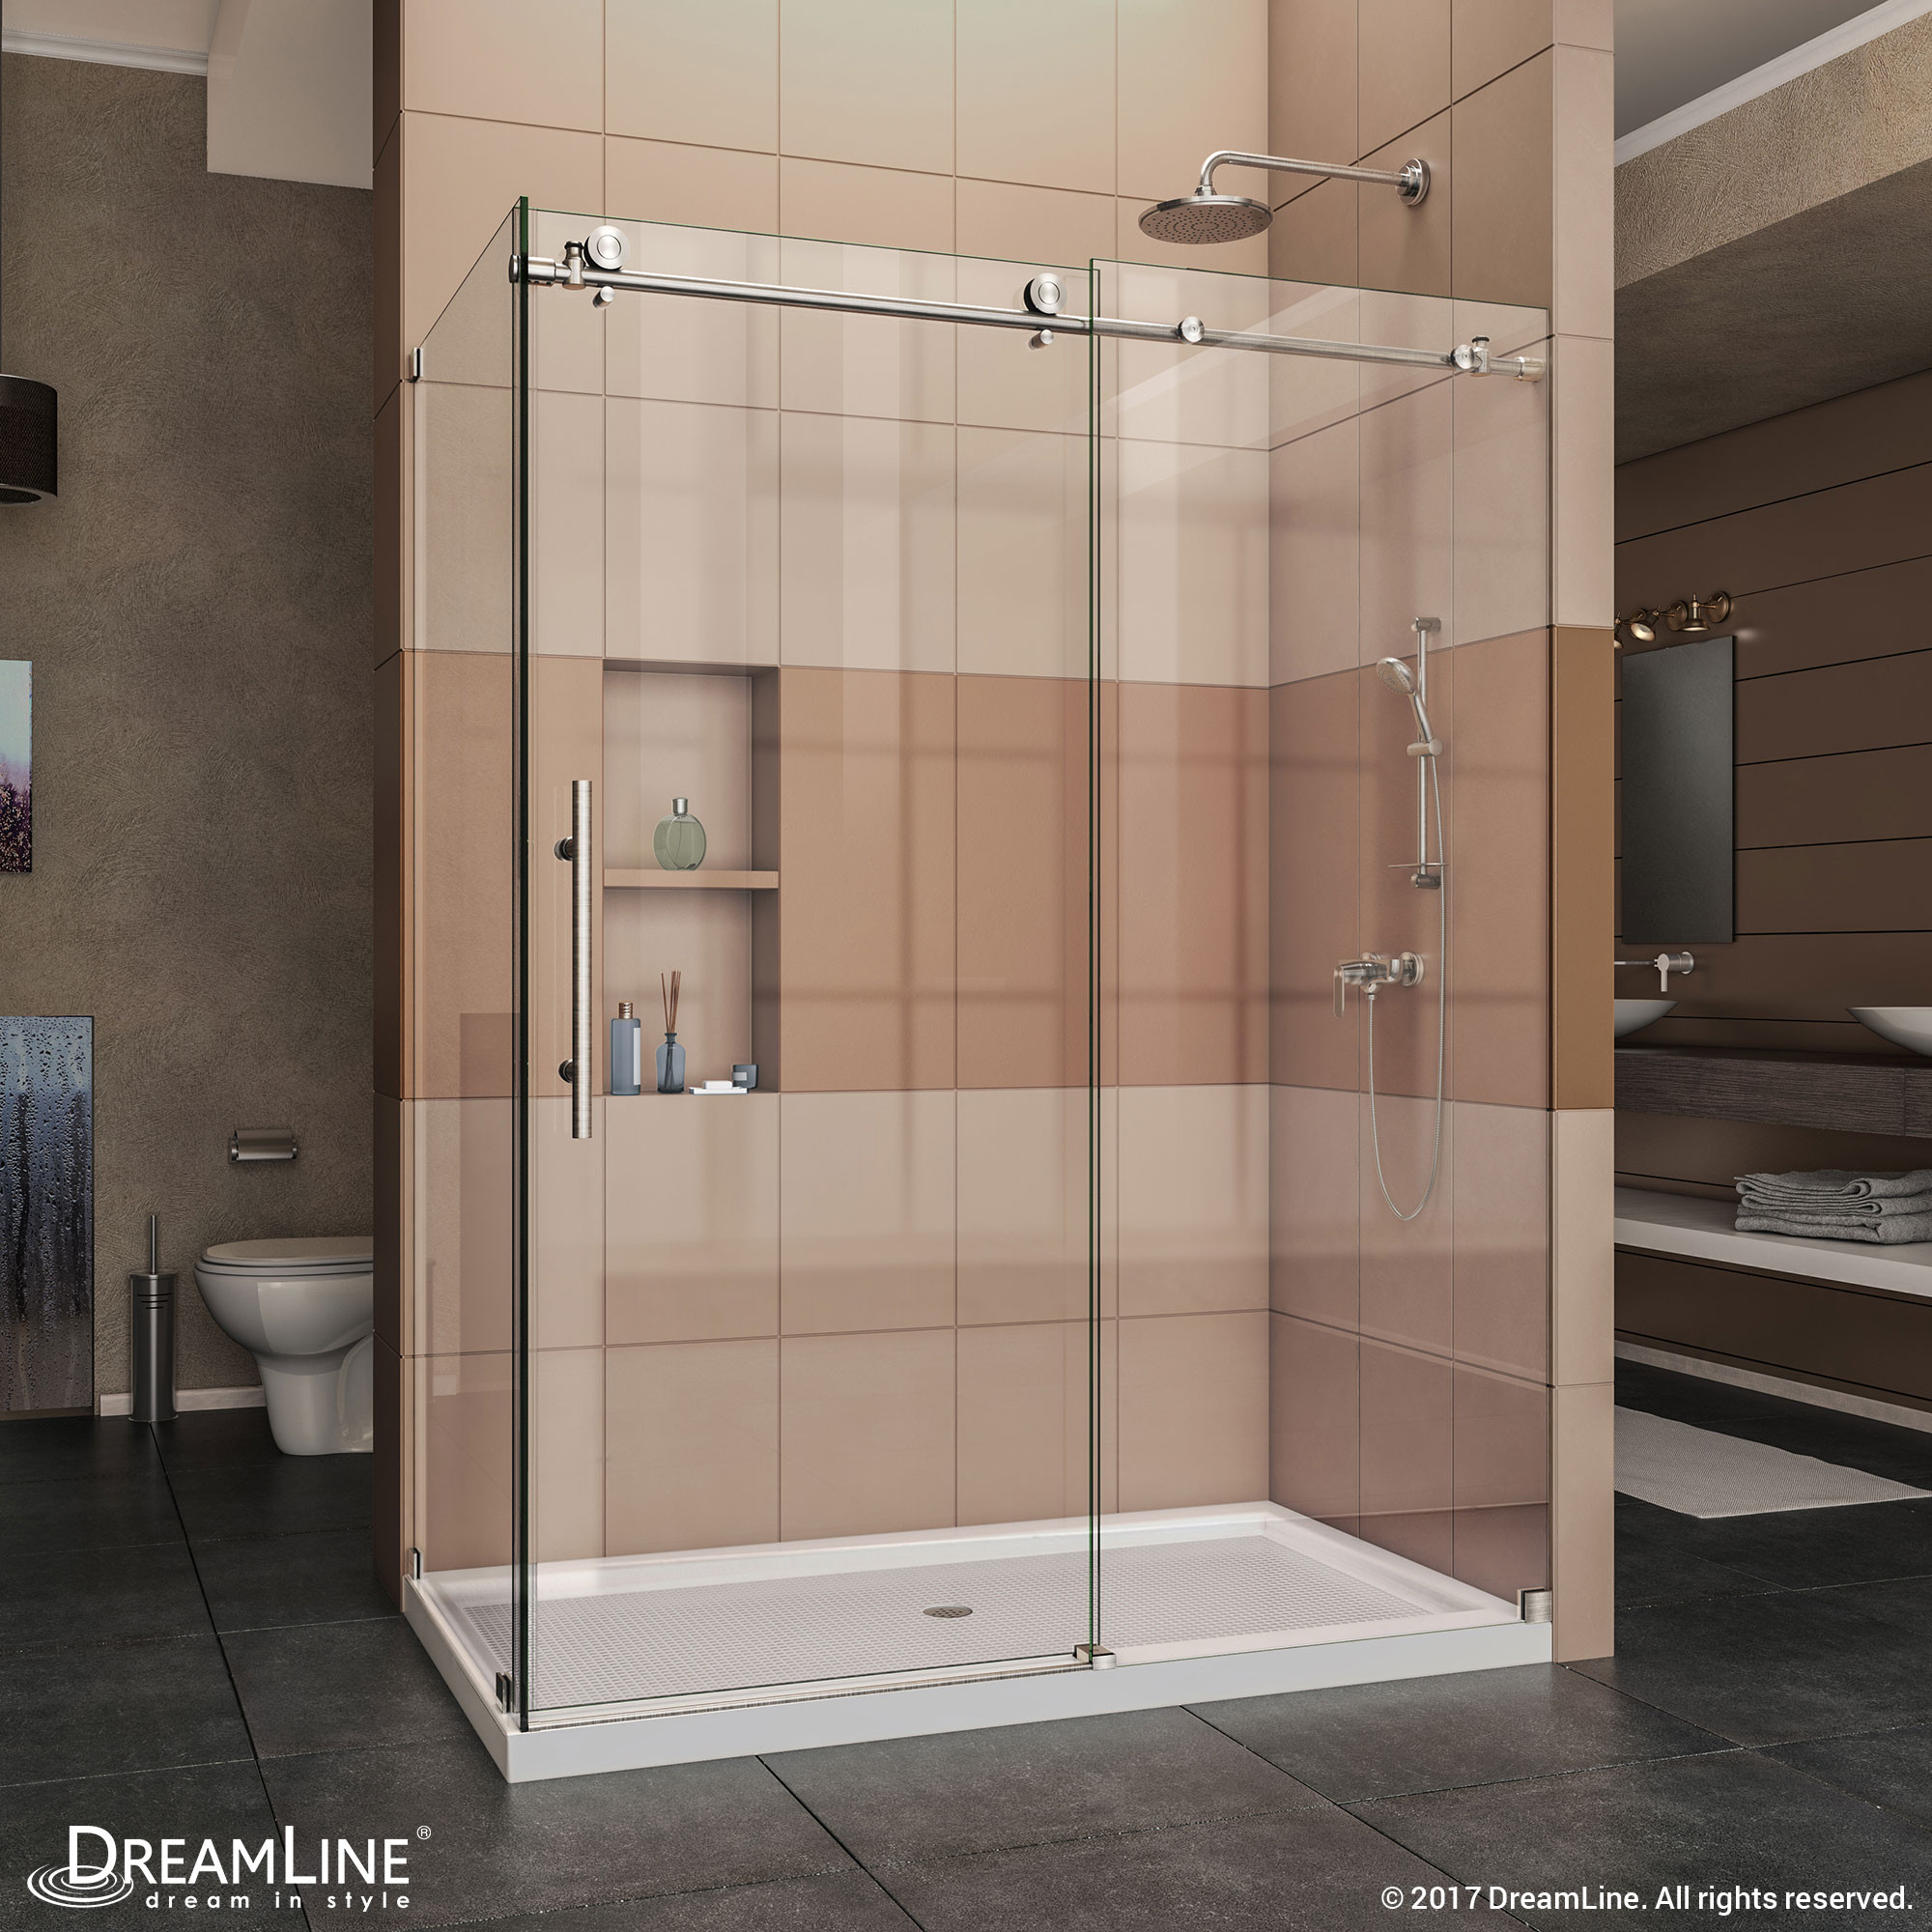 DreamLine SHEN-6134600-07 Enigma-X Shower Enclosure in Brushed Stainless Steel